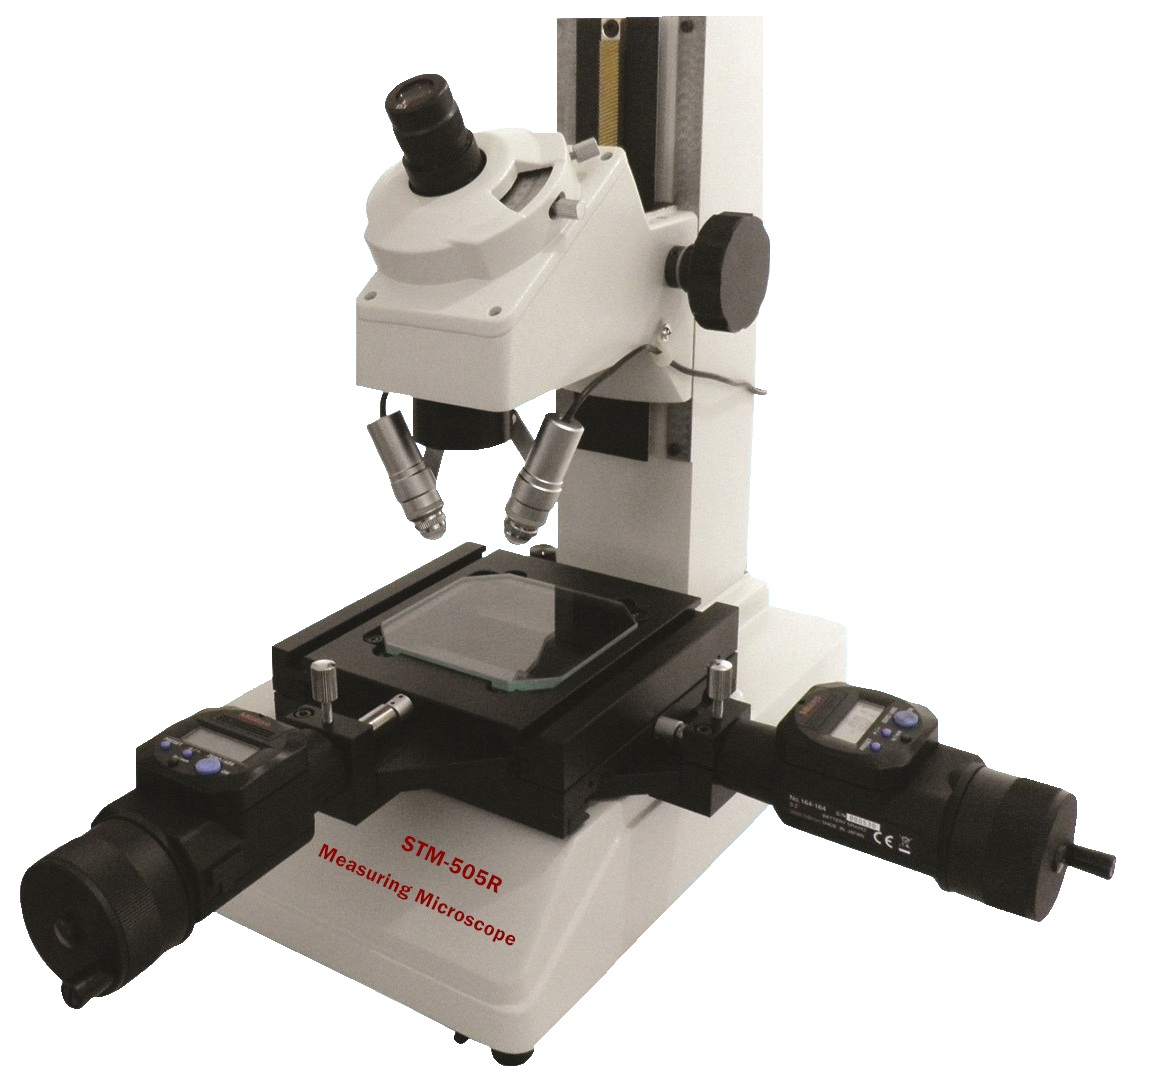 Tool-Maker��s Microscopes STM-505R